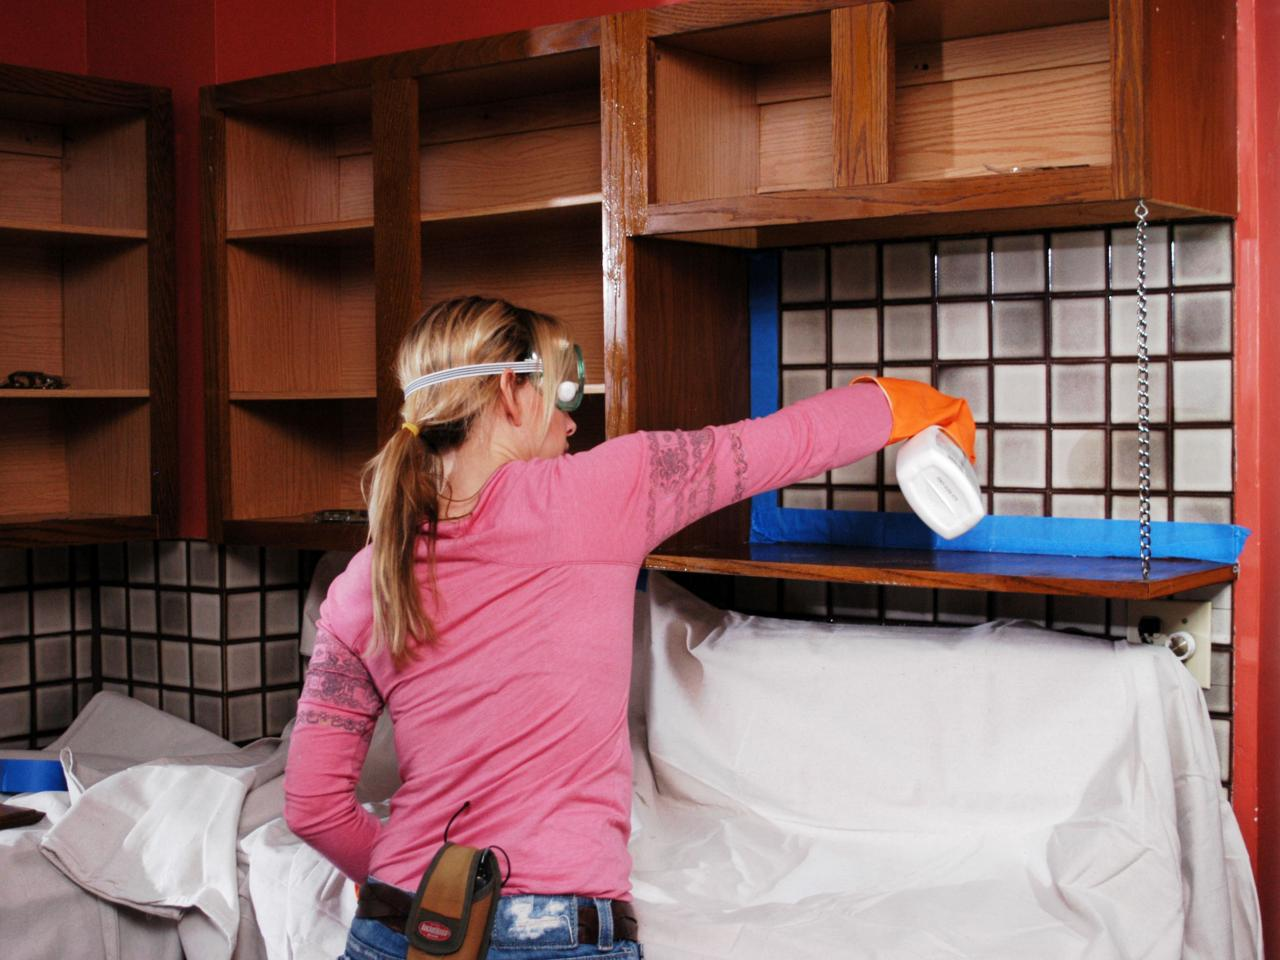 Cleaning the kitchen cabinets - Ultimate How To Original_paint Cabinet Spray Tsp On Cabinet_s4x3